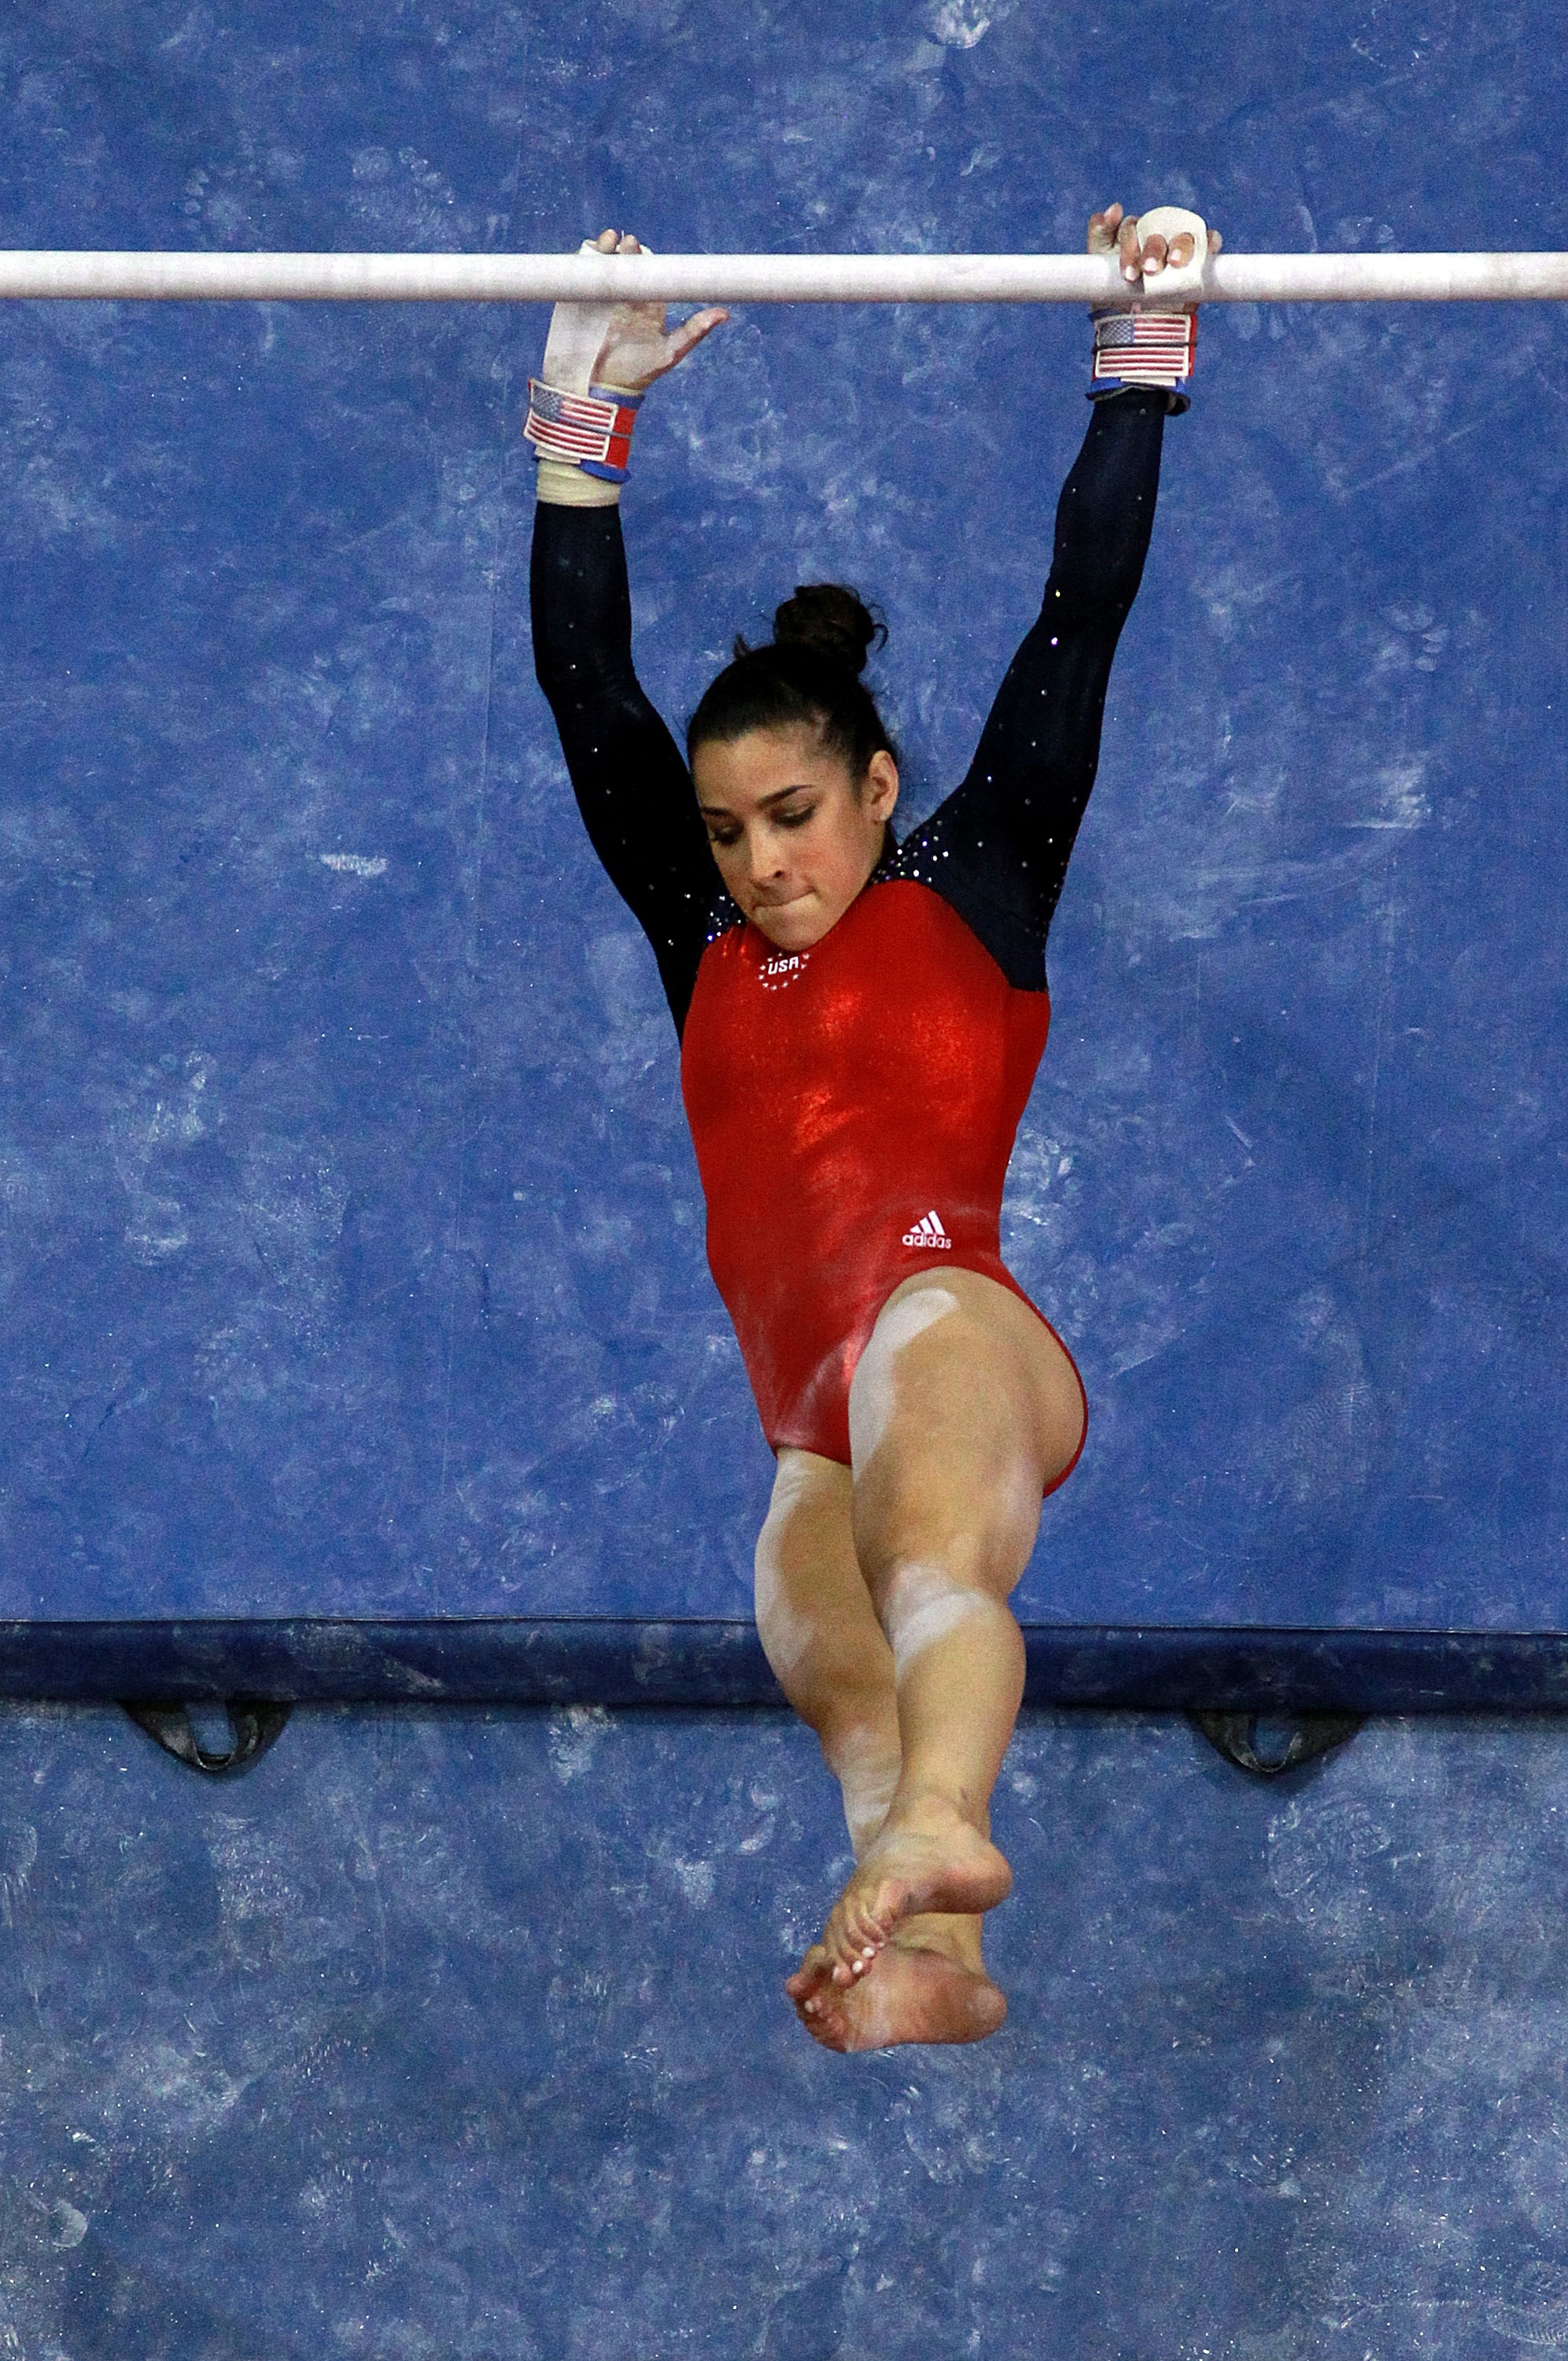 Raisman competes on the uneven bars at the U.S. Olympic Trials. (Getty Images)